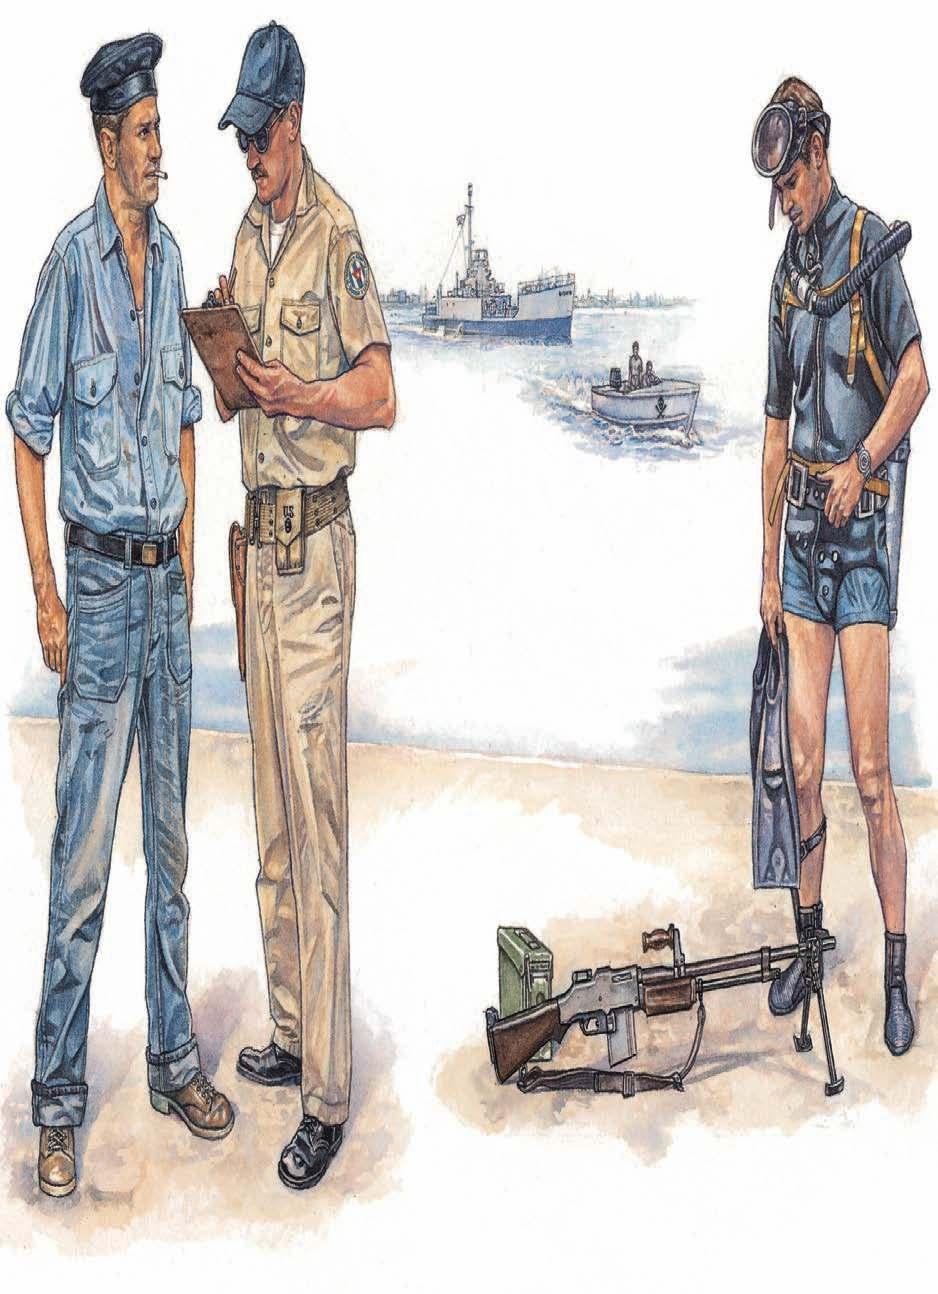 1 2 3 BRIGADE MARITIME ELEMENTS 1: Seaman, fatigue dress